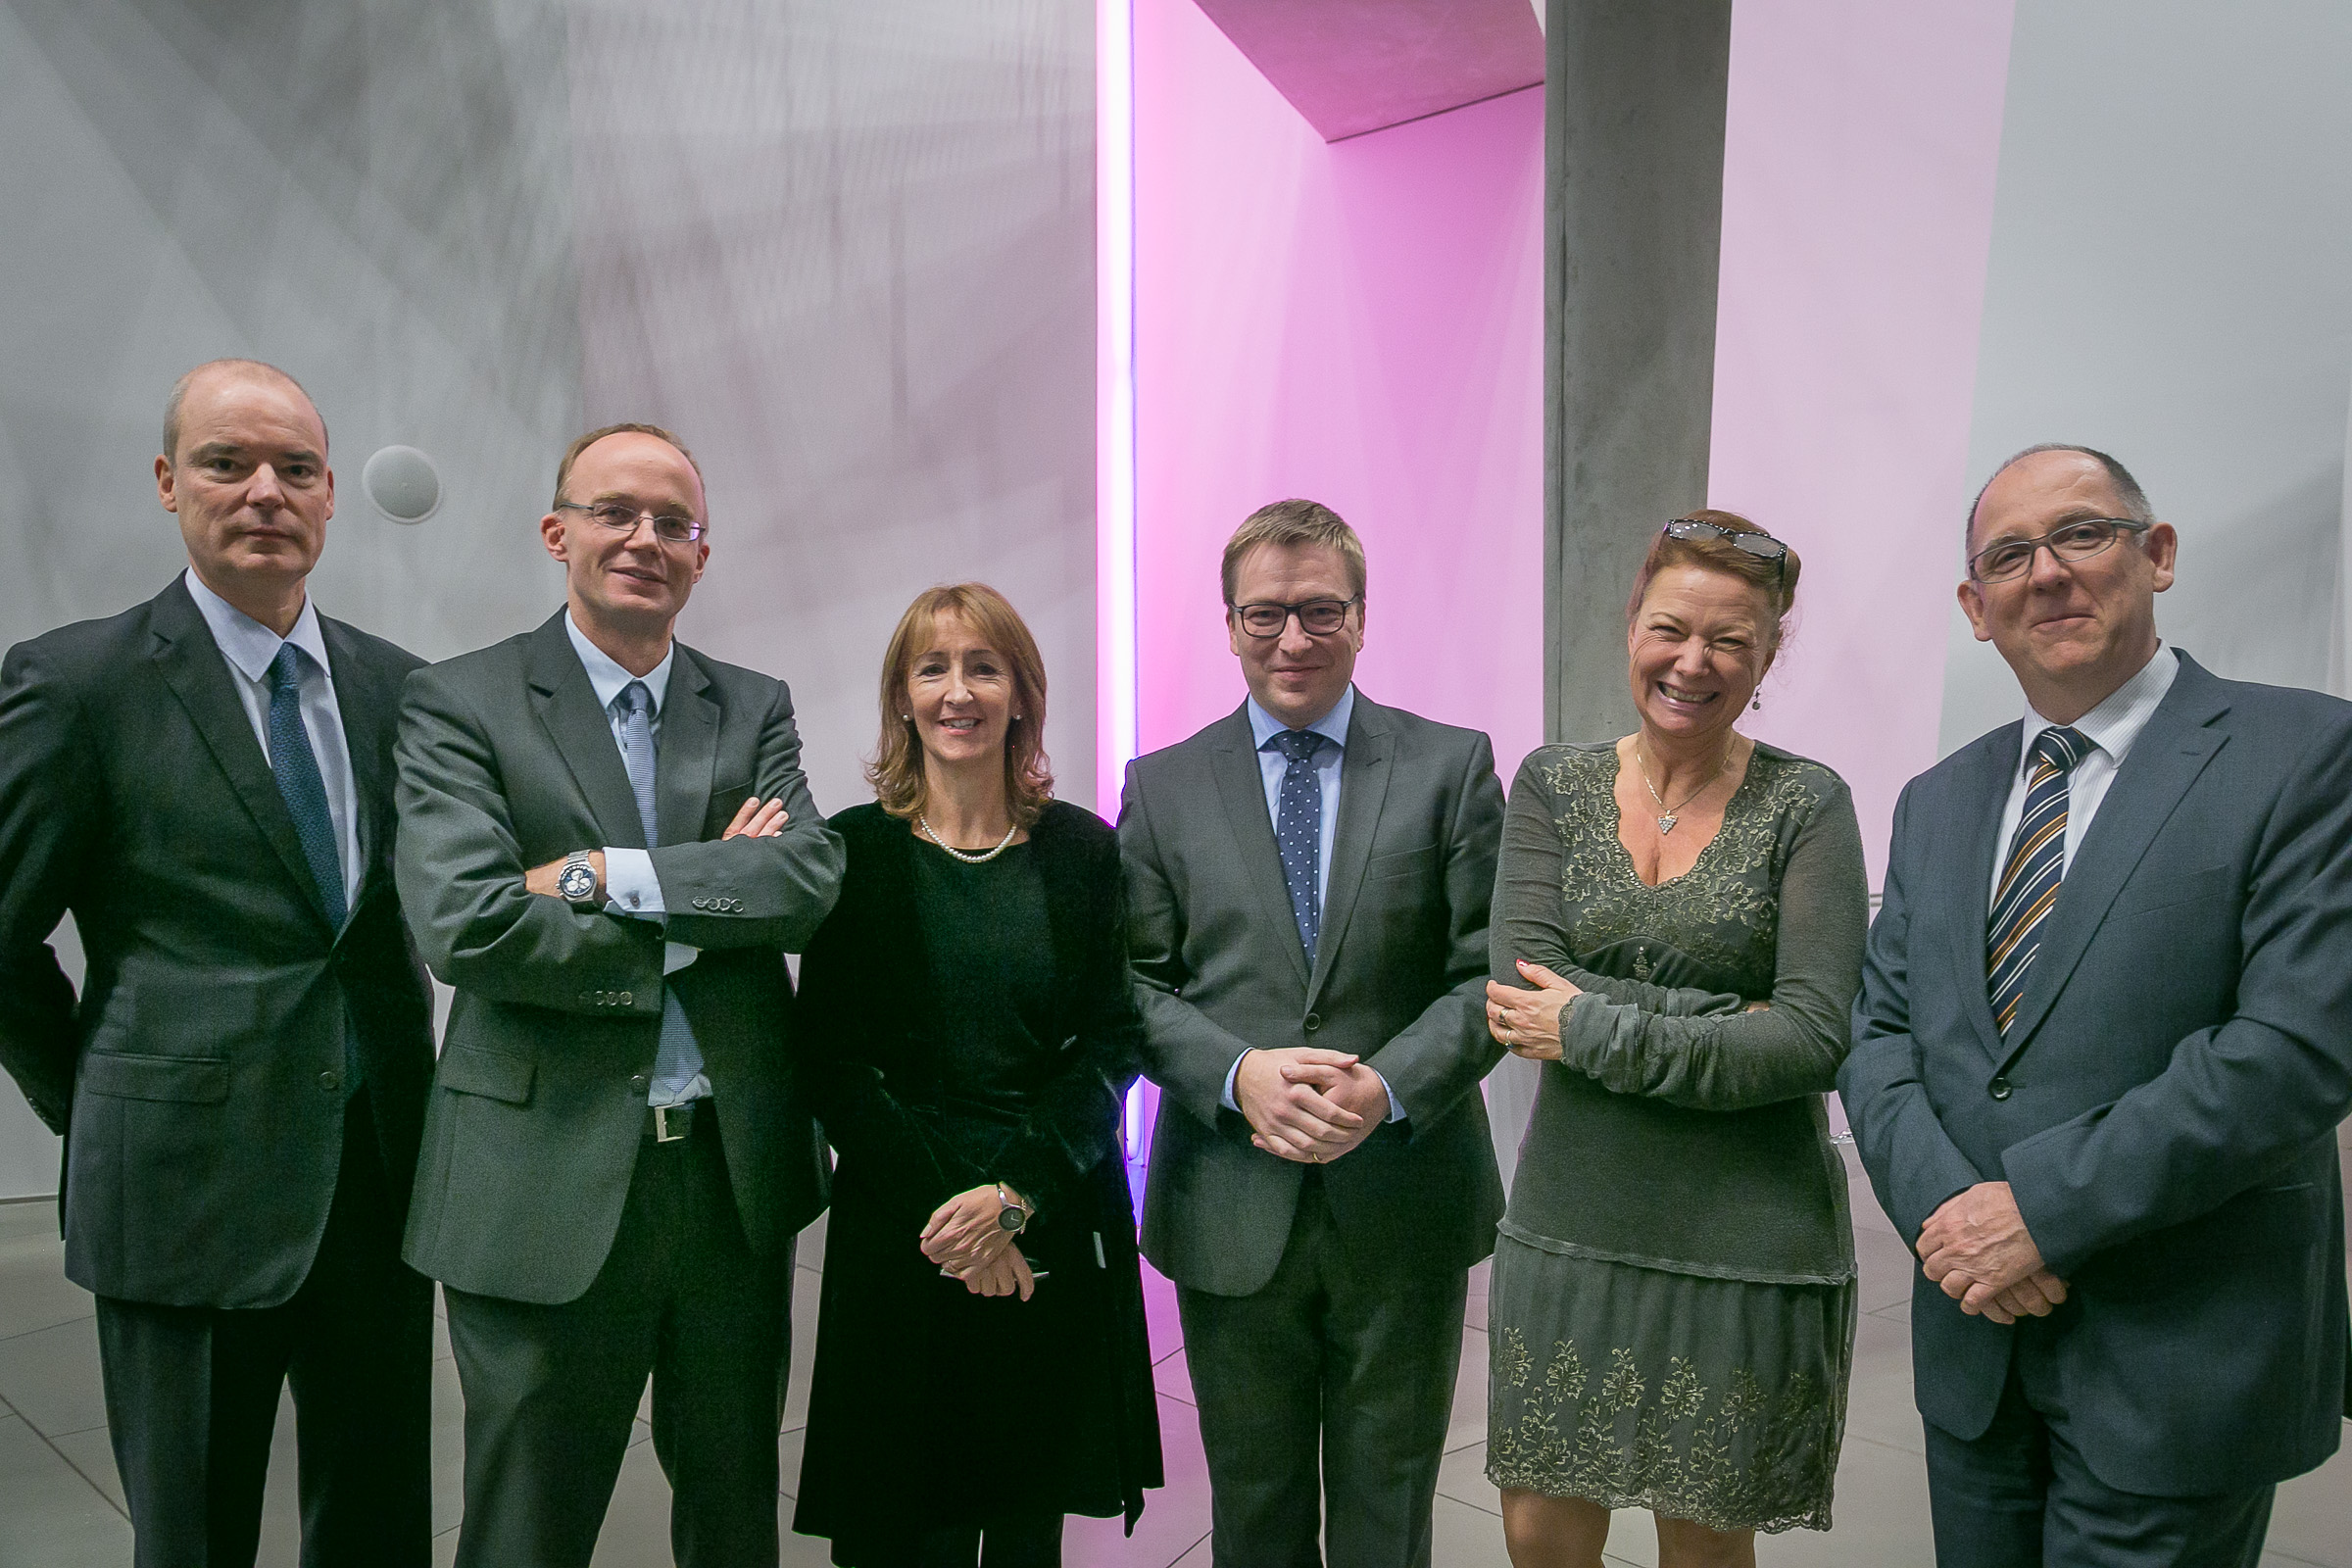 On welcome reception event. From left to right: Jean Junck (Luxembourg Chamber of Commerce), Stefan Braum (University of Luxembourg), Denise Fletcher (University of Luxembourg), Marc Hansen (Luxembourg Secretary of State for Higher Education), Helle Neergaard (ECSB), Gérard Eischen (Luxembourg Chamber of Commerce)